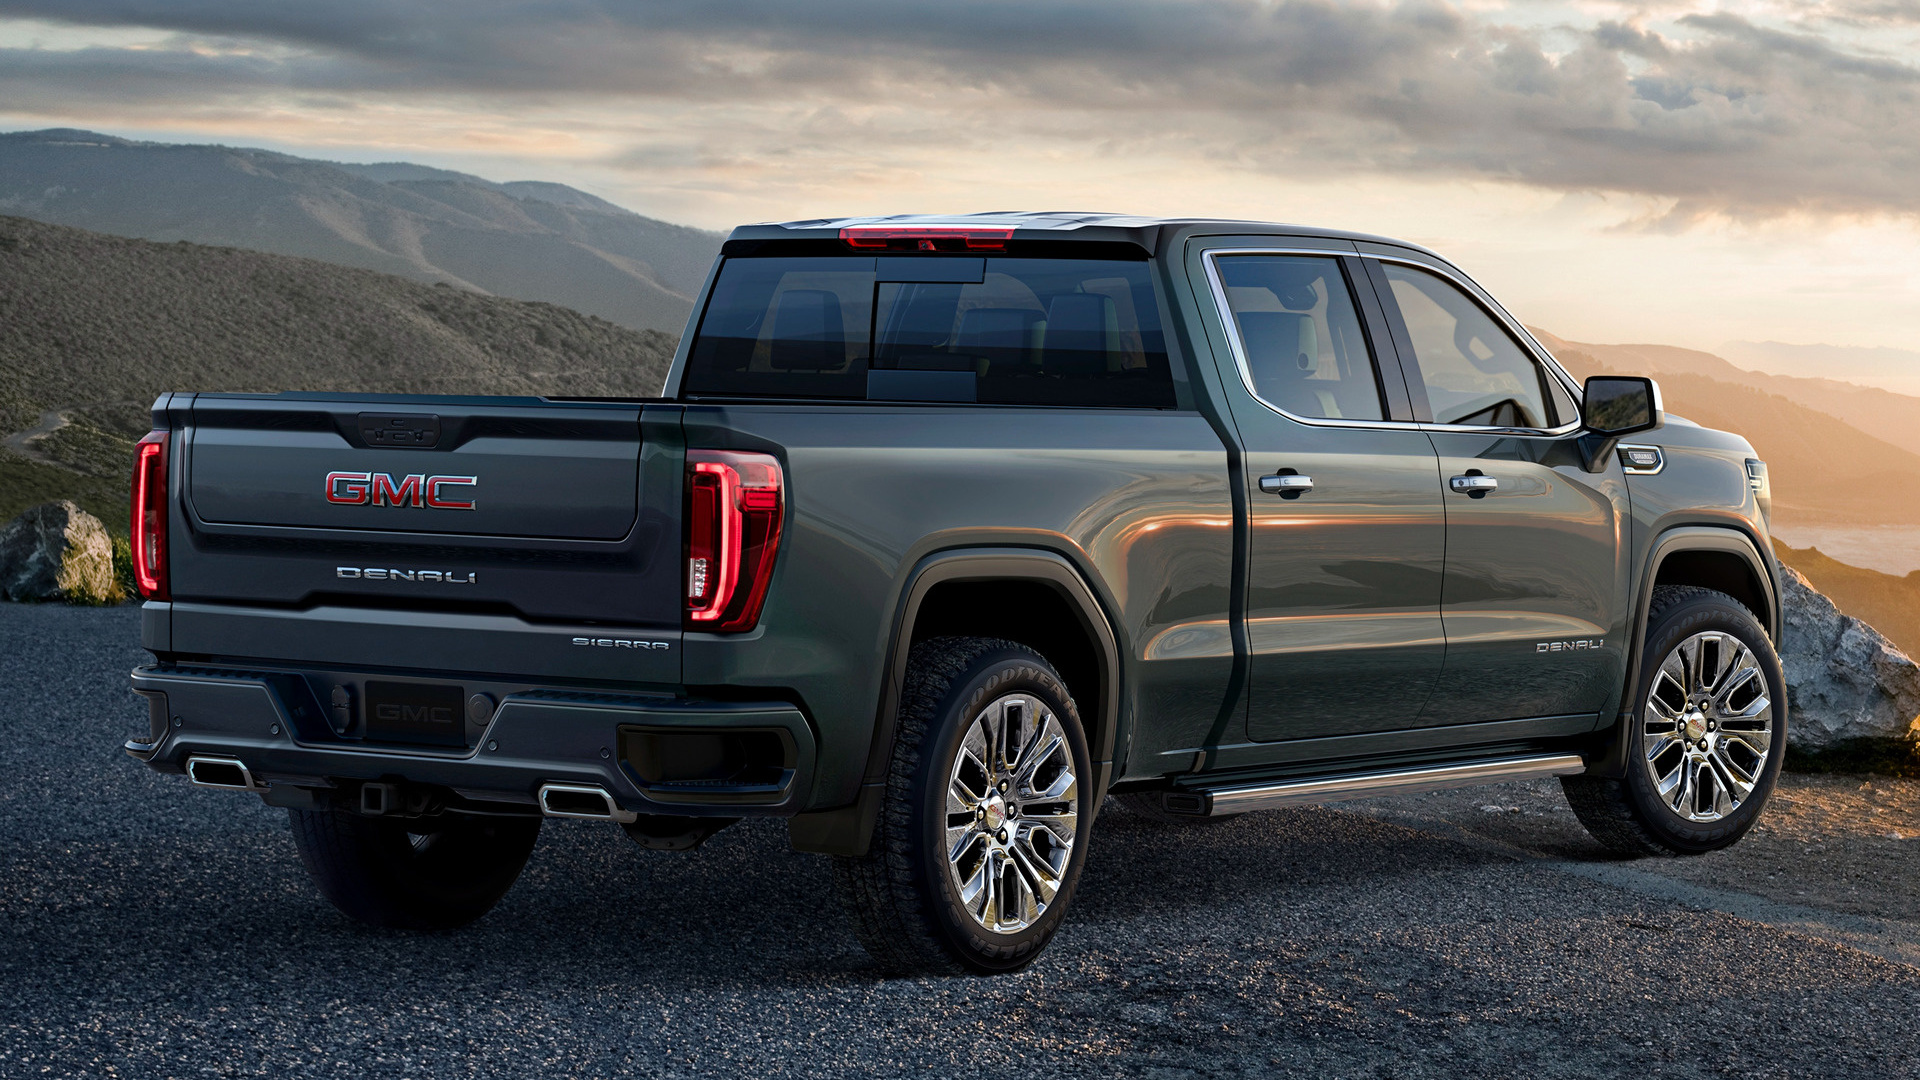 2019 GMC Sierra Denali Crew Cab - Wallpapers and HD Images ...